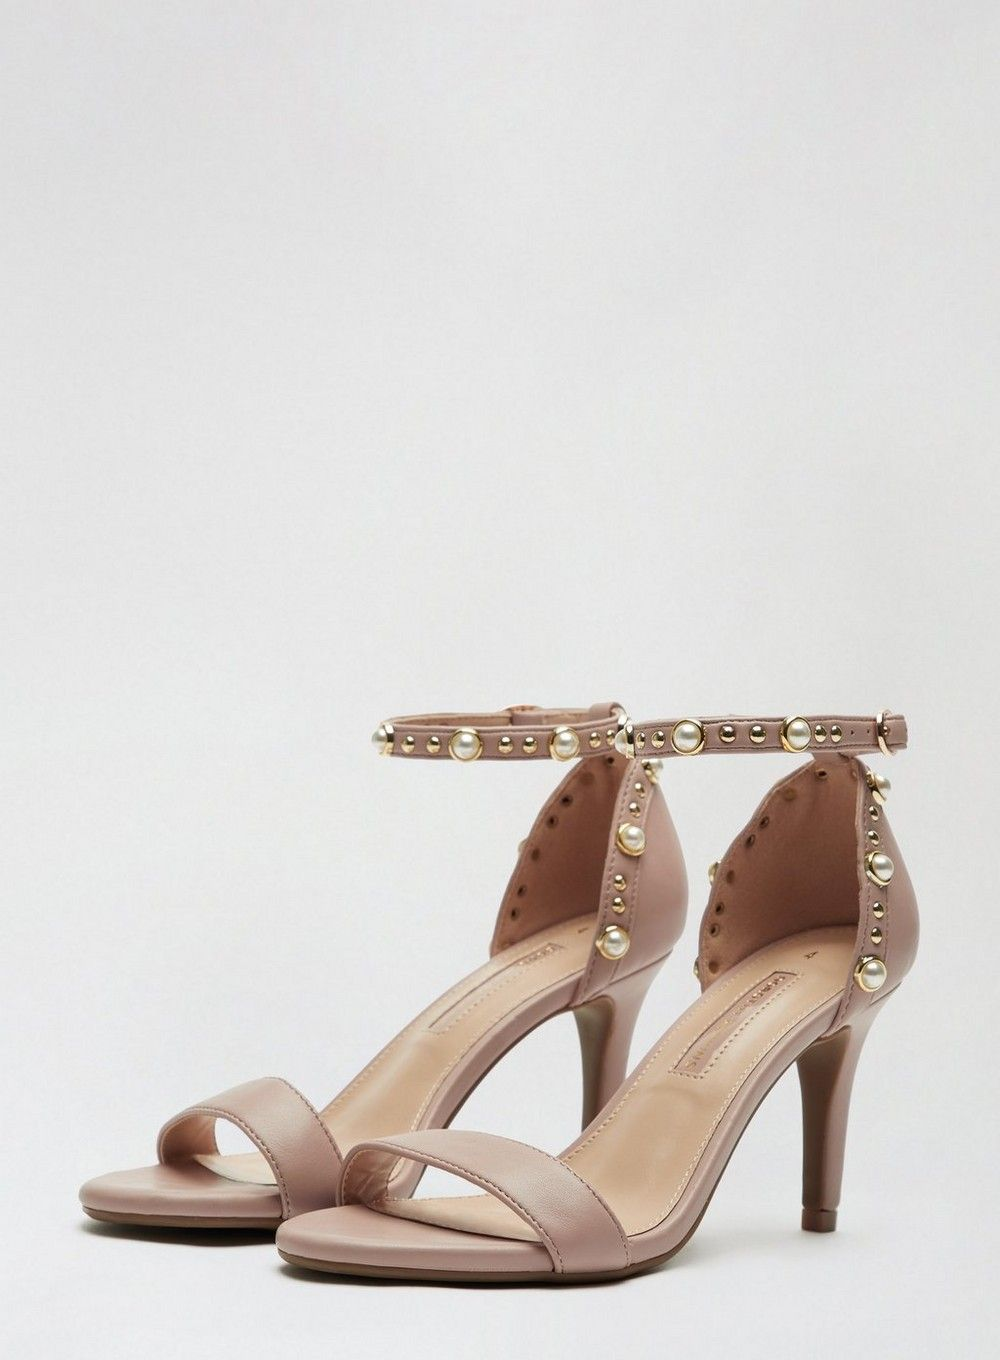 Dorothy Perkins Womens Beige Simba Pearl Heeled Ankle Sandals Stiletto Shoes